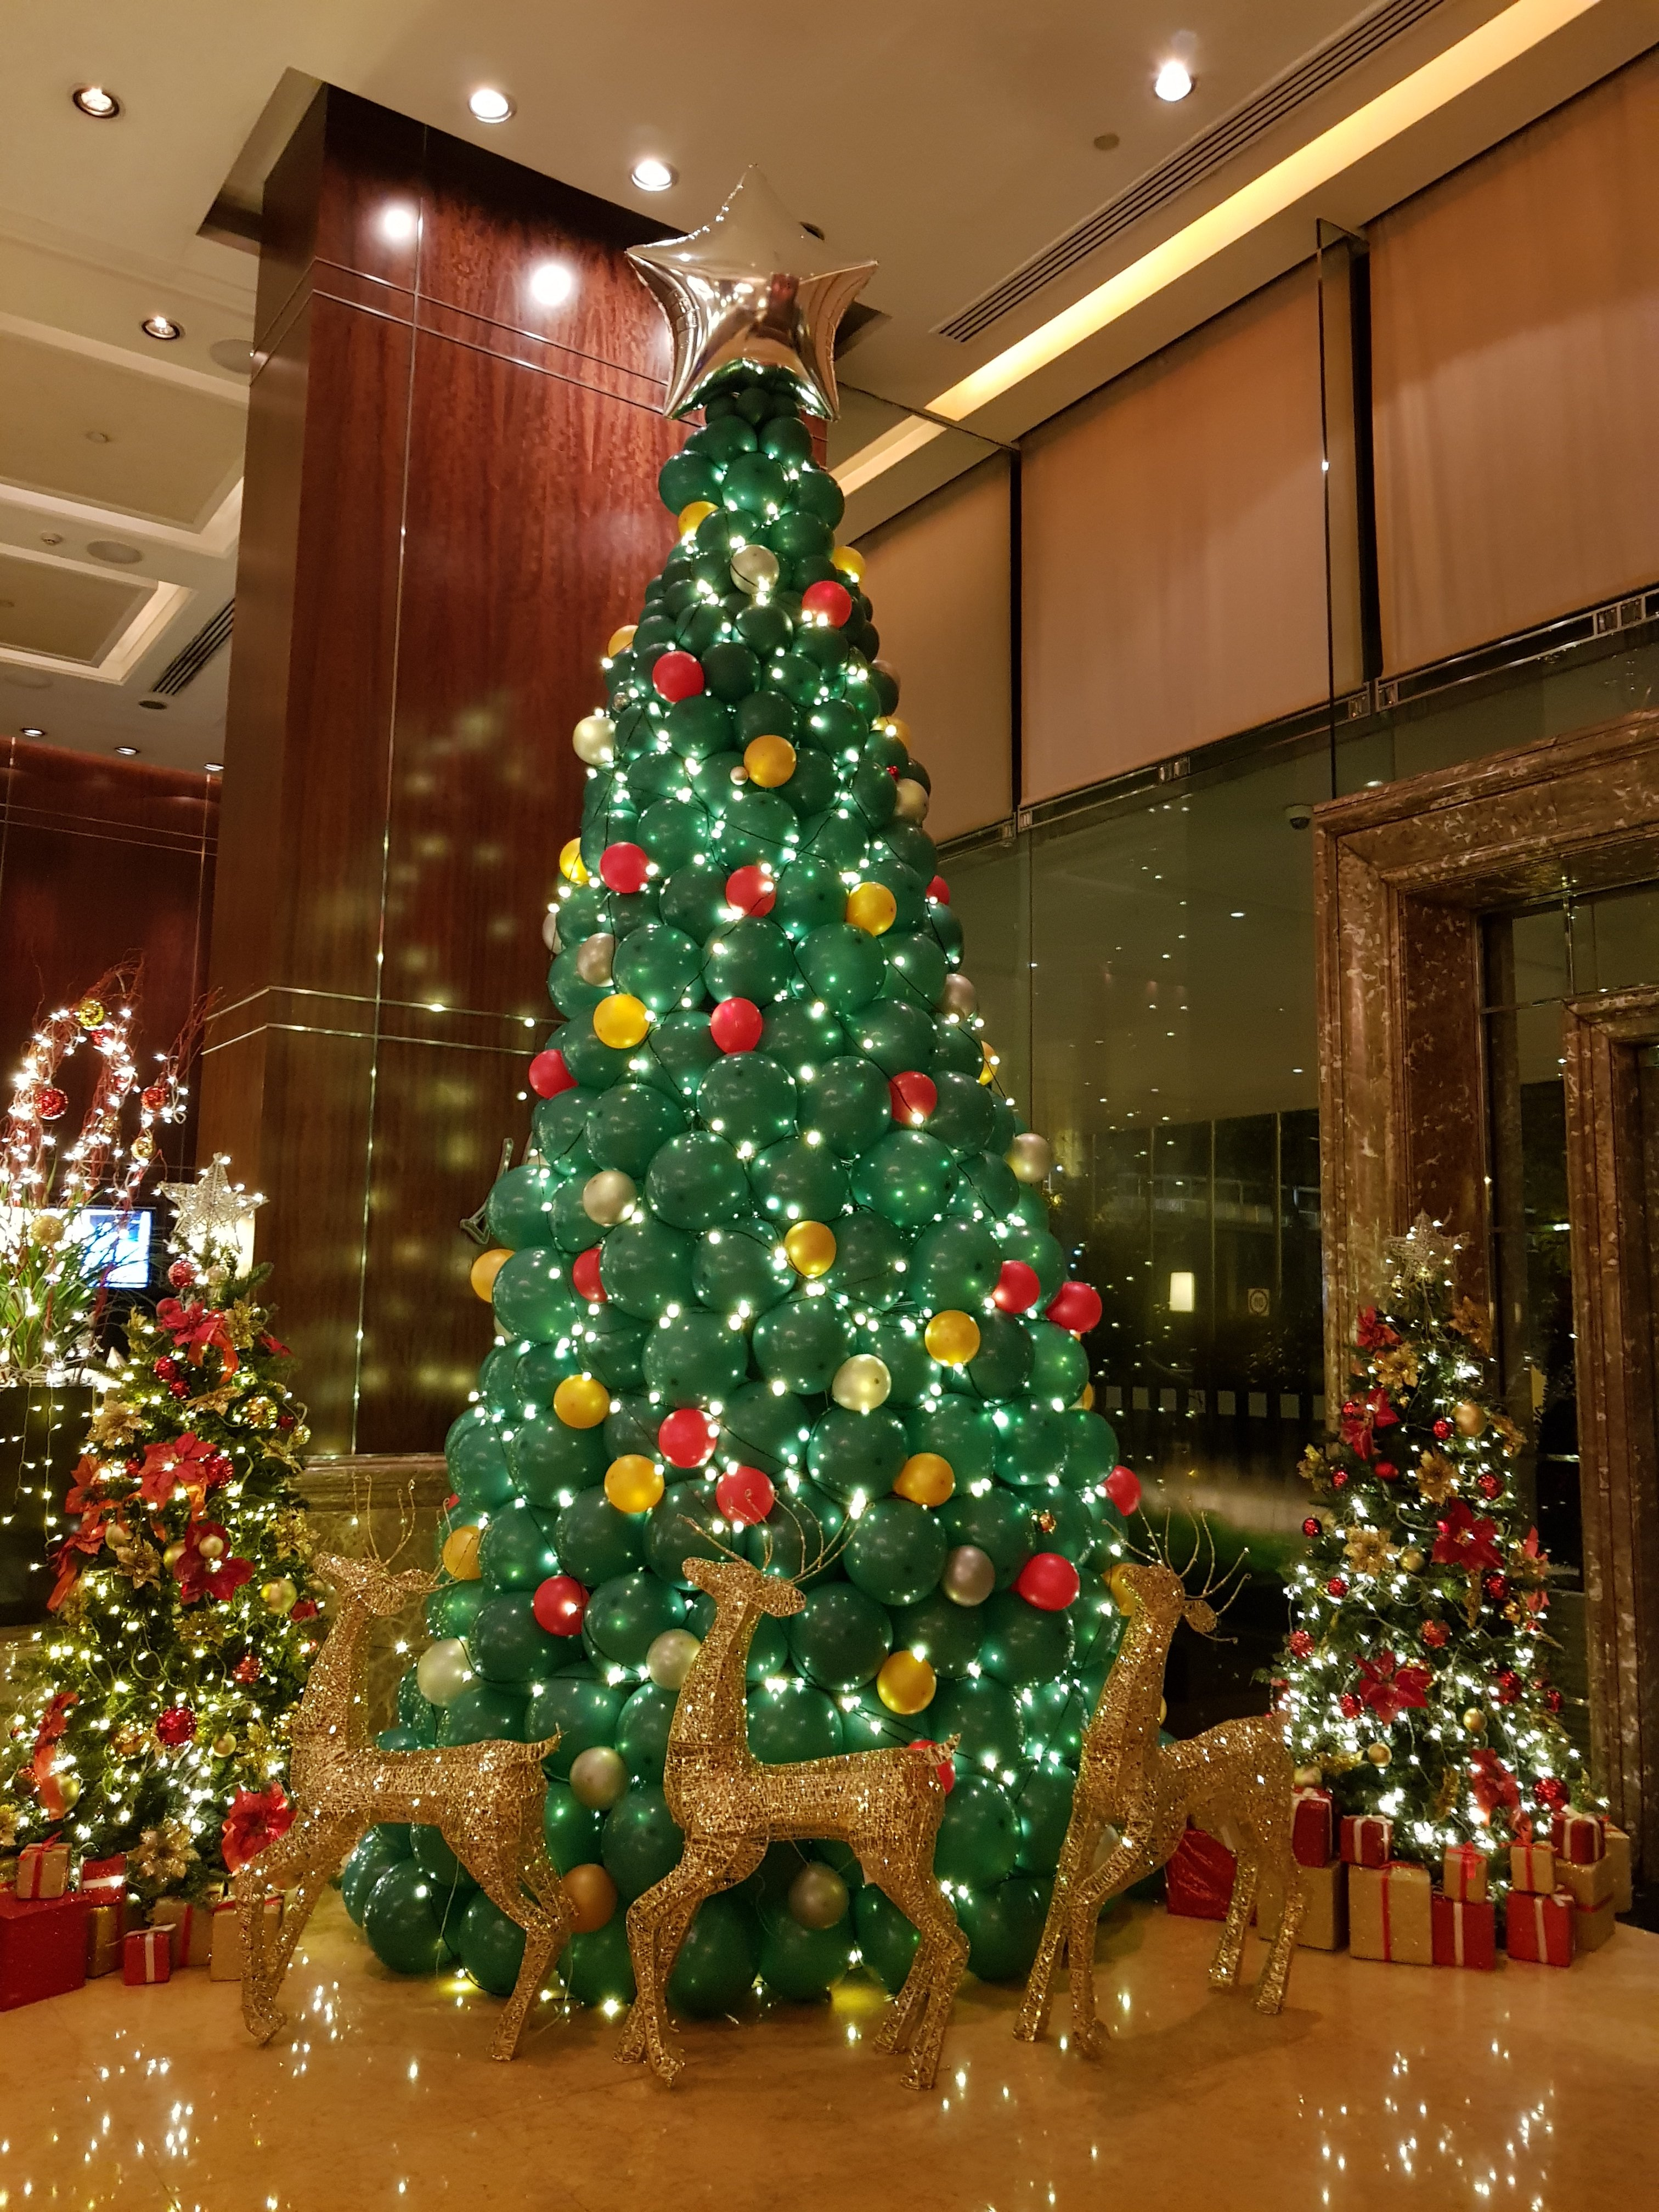 , Christmas Balloon decorations for holiday Inn Singapore Orchard!, Singapore Balloon Decoration Services - Balloon Workshop and Balloon Sculpting